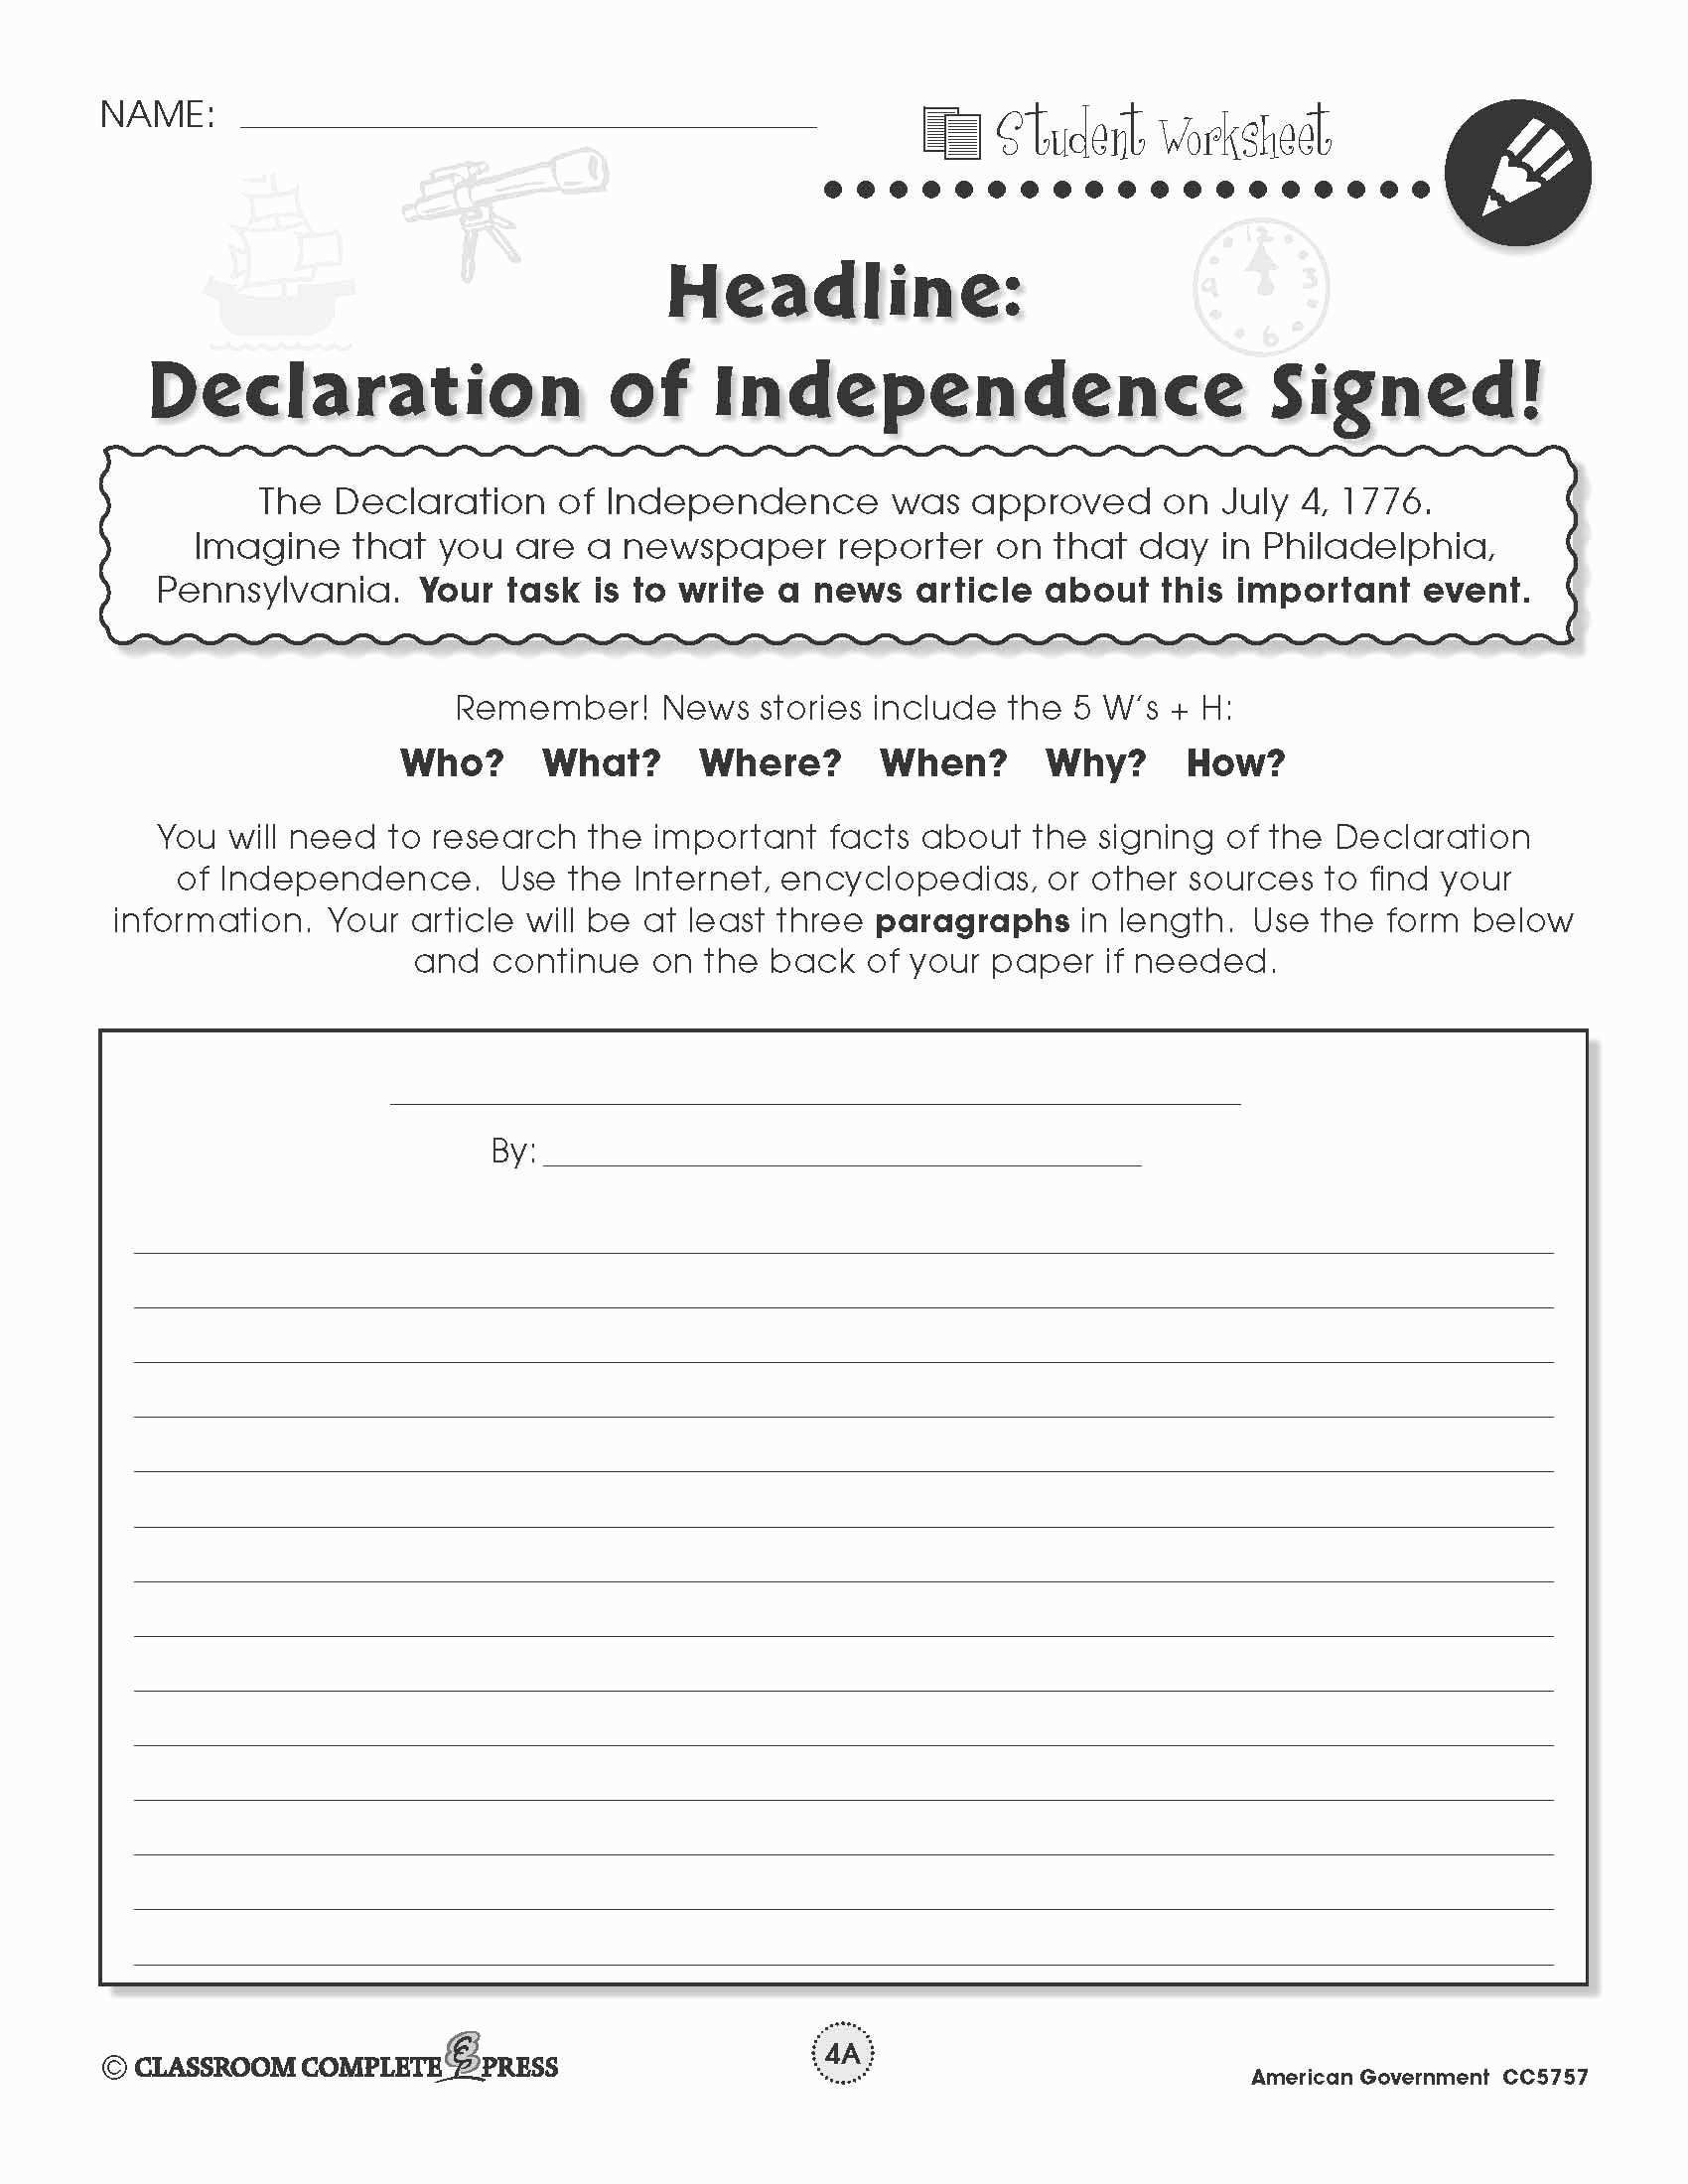 Mark Twain Worksheet Answers In 2020 History Lesson Plans History Worksheets Social Studies Education